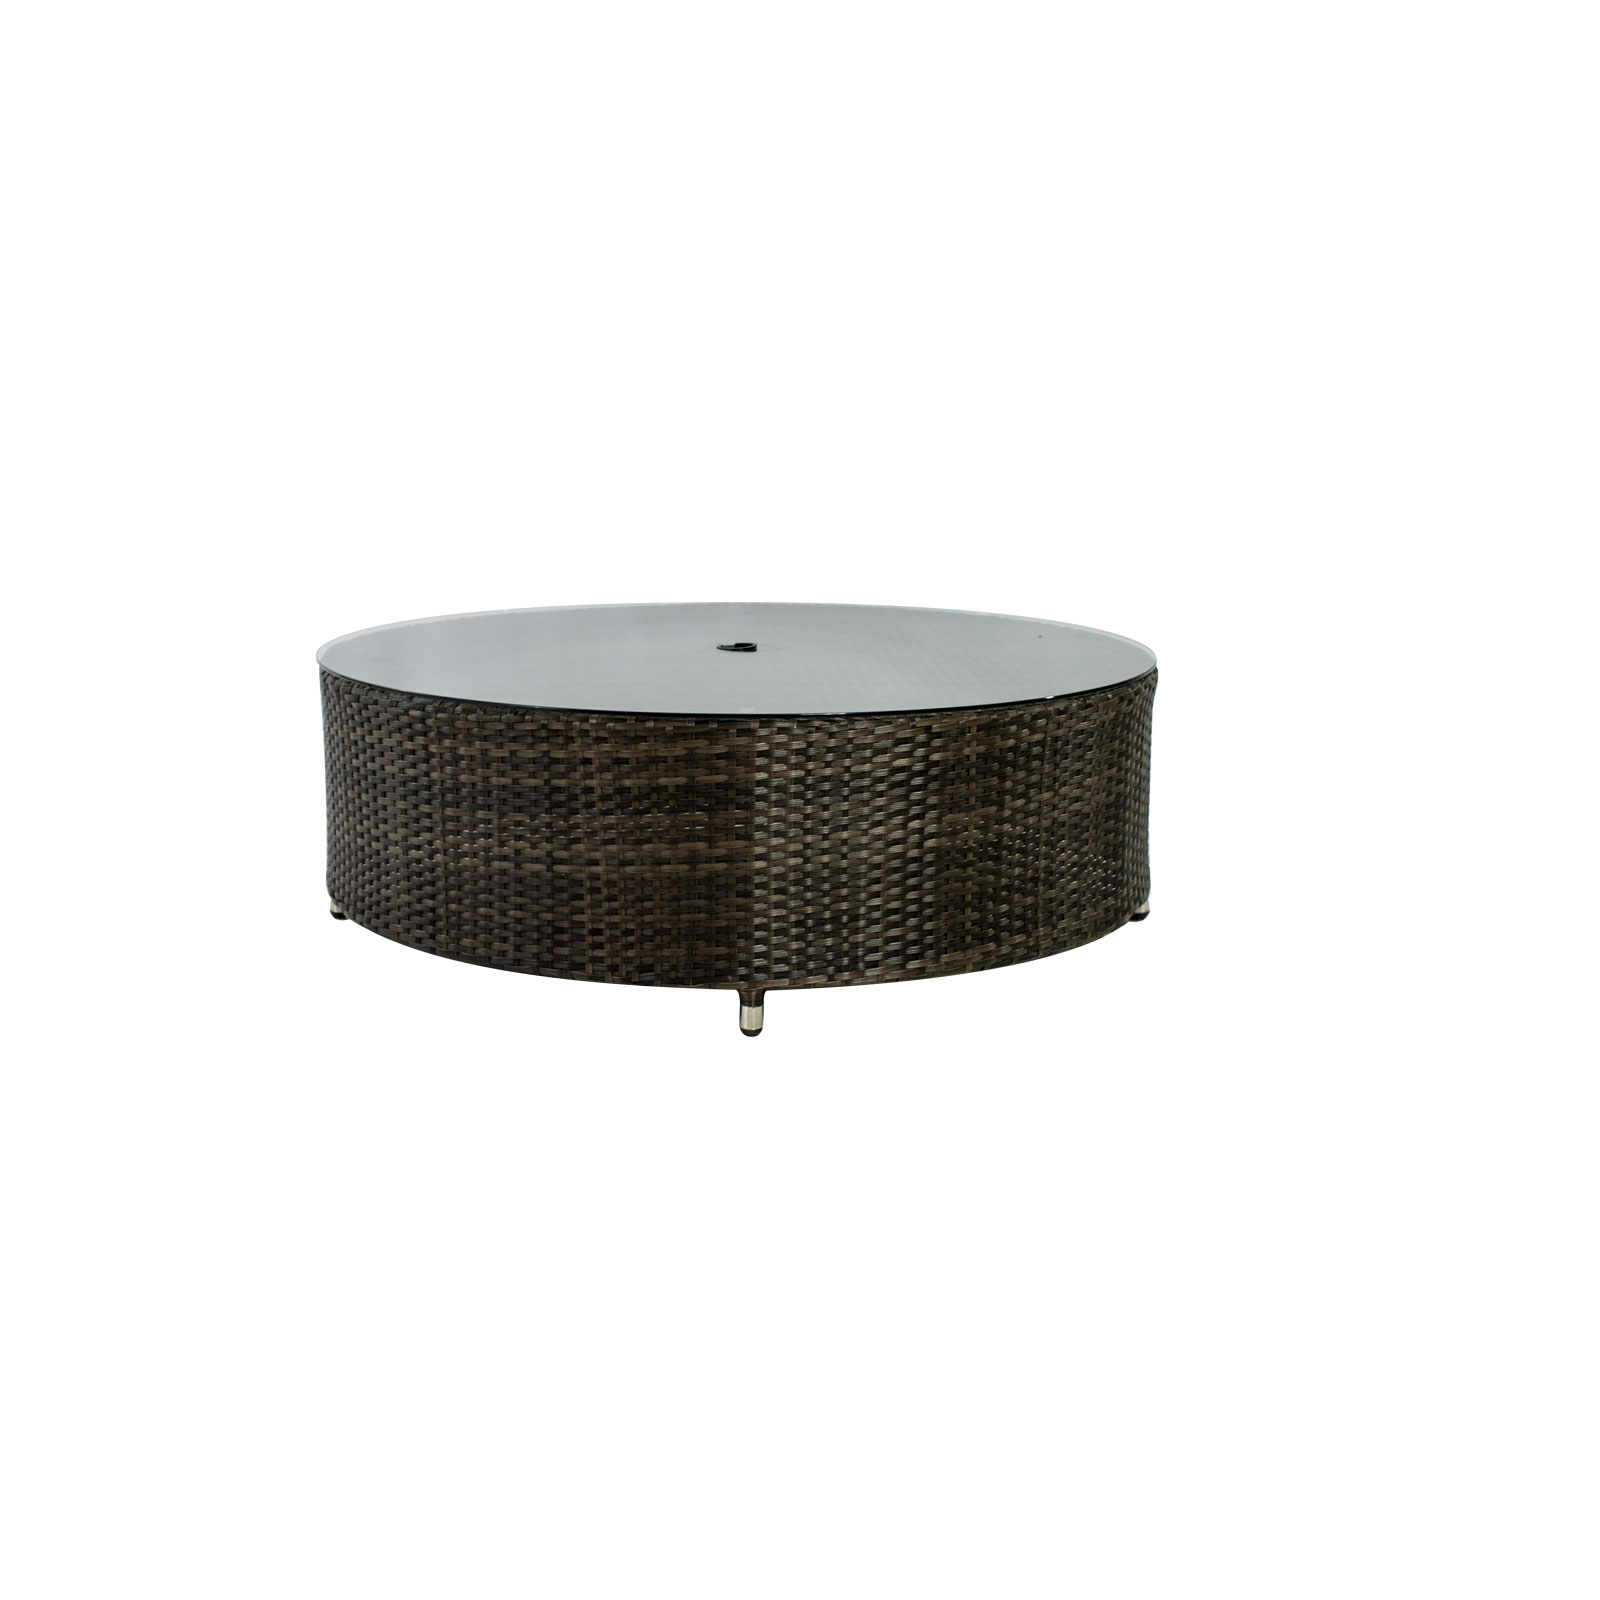 outdoor coffee table with umbrella hole outside side round circa source furniture dorm accessories pads small antique tables storage ideas tiffany inspired lamps circular cotton